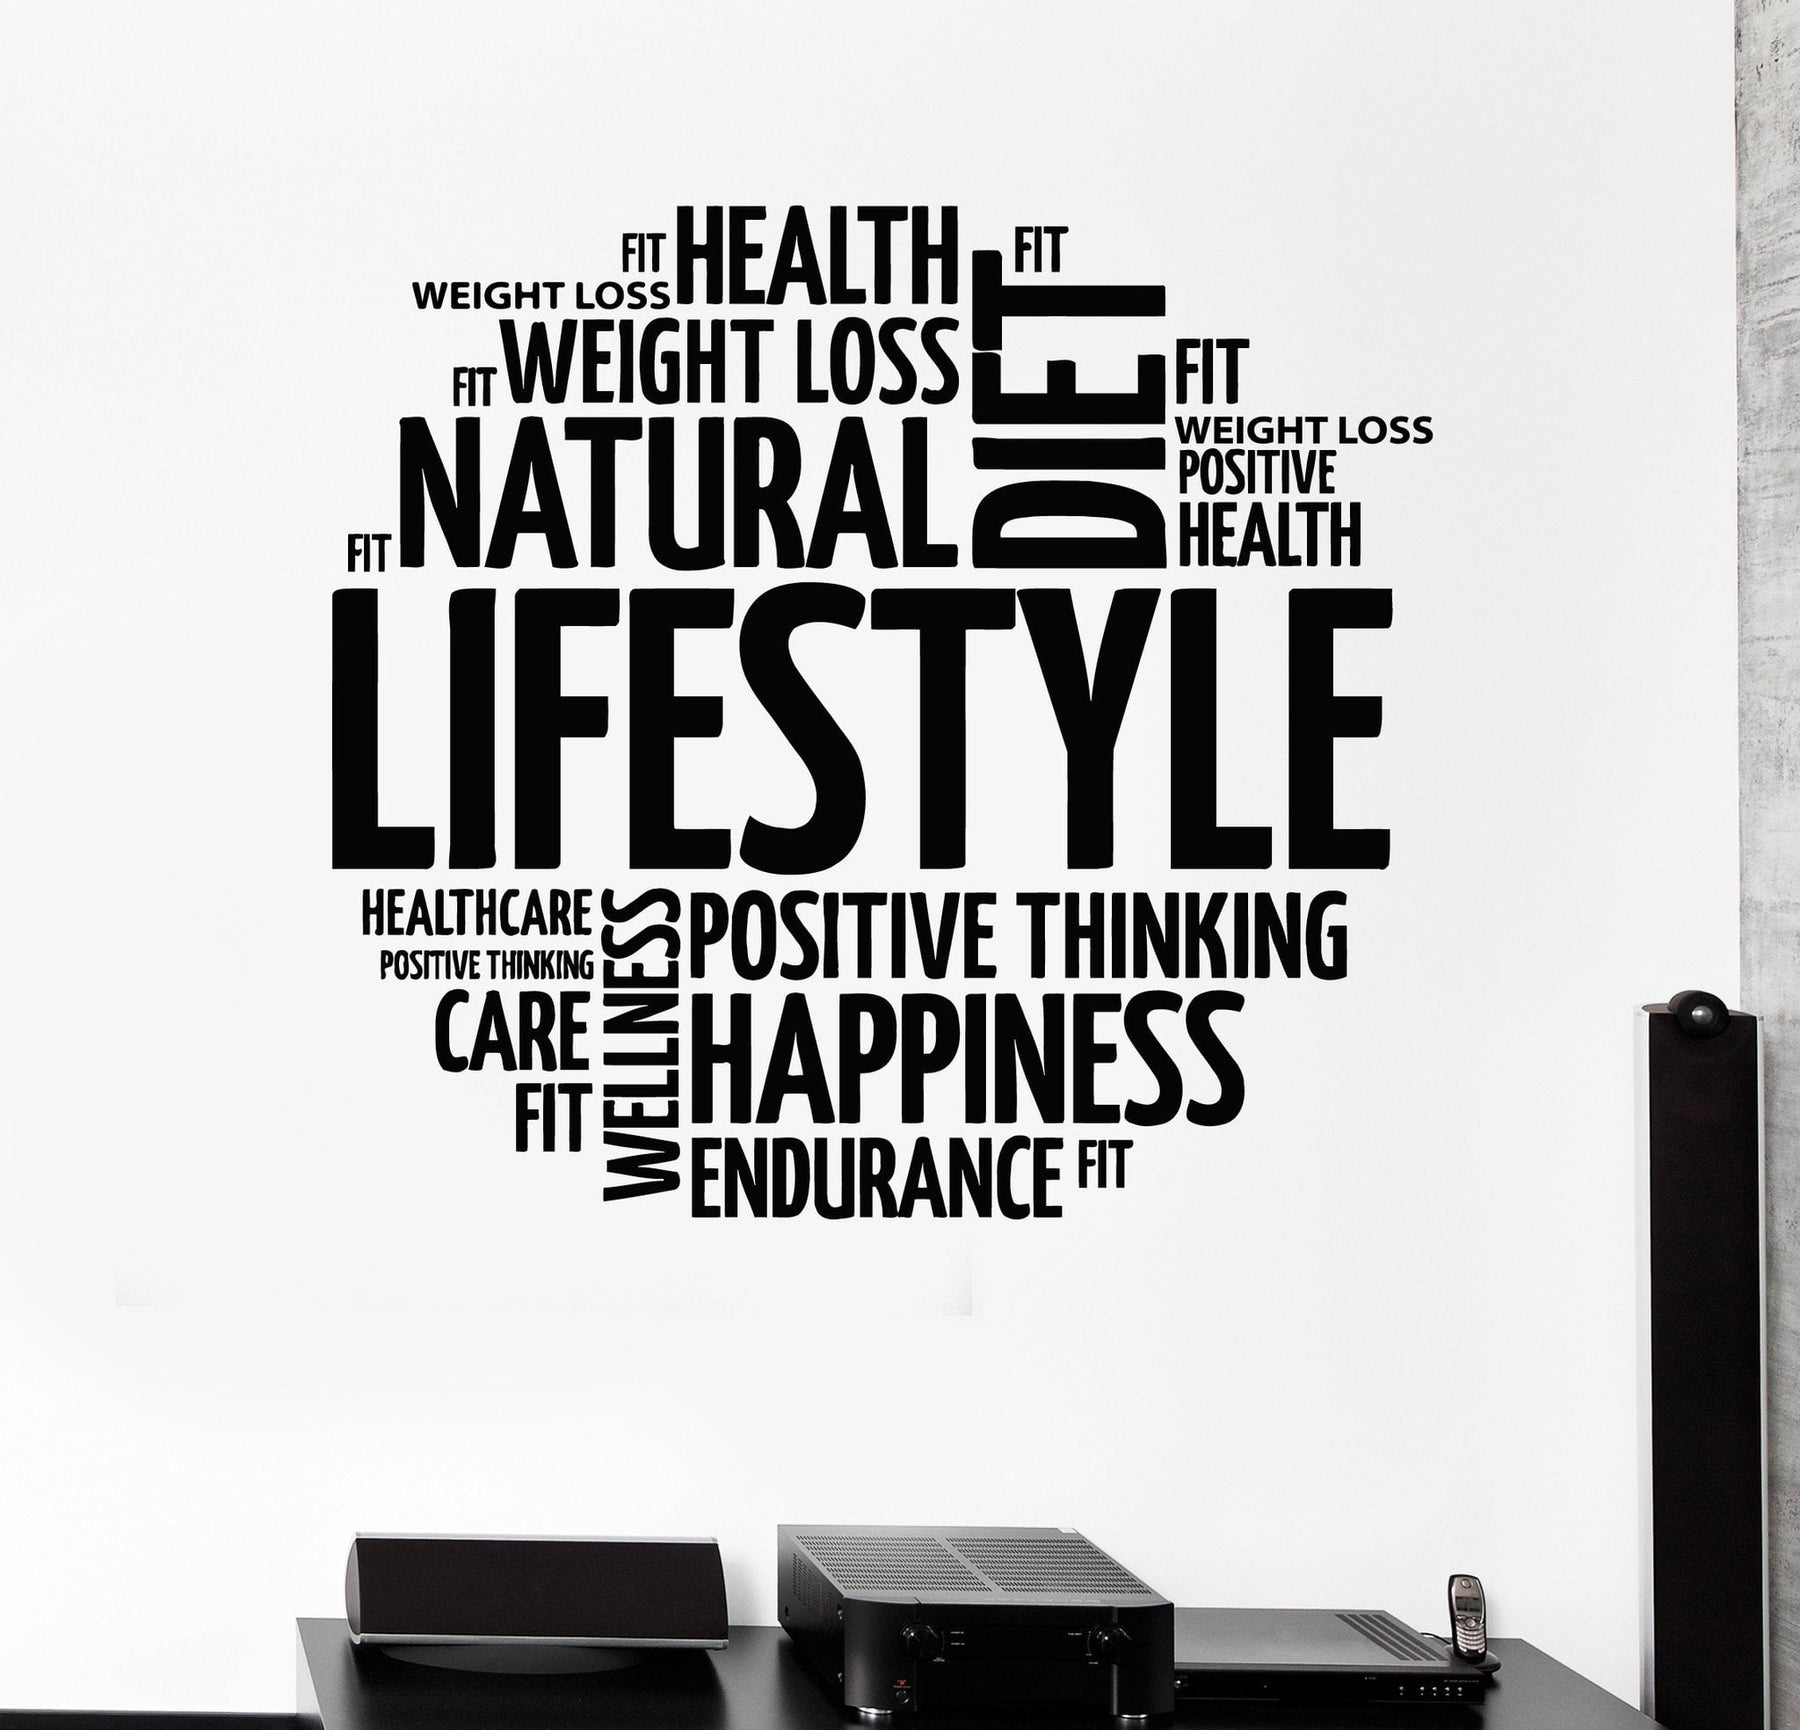 Vinyl Wall Decal Healthy Lifestyle Words Motivation Diet Stickers Unique Gift (ig4251)